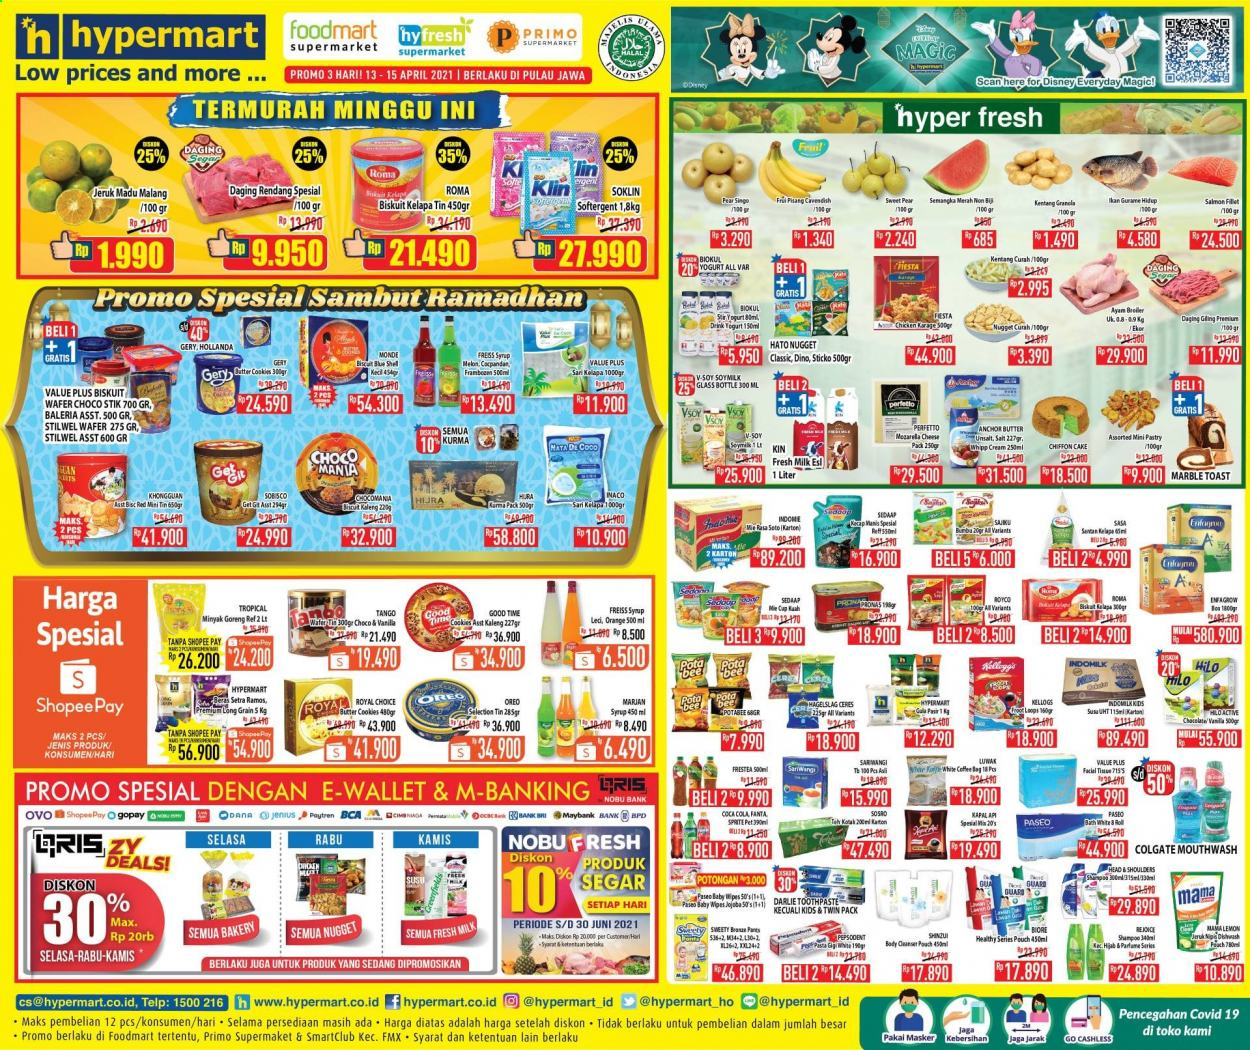 Promo Hypermart - 04/13/2021 - 04/15/2021 - Produk diskon - milk, tissue, coffee, chicken, semangka merah, hato nugget, gula pasir, indomilk, goreng, wafer, wallet, wipes, yogurt, sweety, tango, tango wafer, sprite, salmon, salmon fillet, rendang, semangka, shampoo, shell, pants, pepsodent, pet, pisang, lemon, mah, manta, mozarella, oreo, kecap manis, kentang, minyak, minyak goreng, melon, jeruk, jeruk nipis, indomie, chocolate, gula, head, head & shoulders, fiesta, glass, granola, disney, eau de parfume, daging rendang, cleanser, coco, colgate, cookies, butter, beras, biscuits, box, bag, bath, glass bottle, drink. Halaman 1.